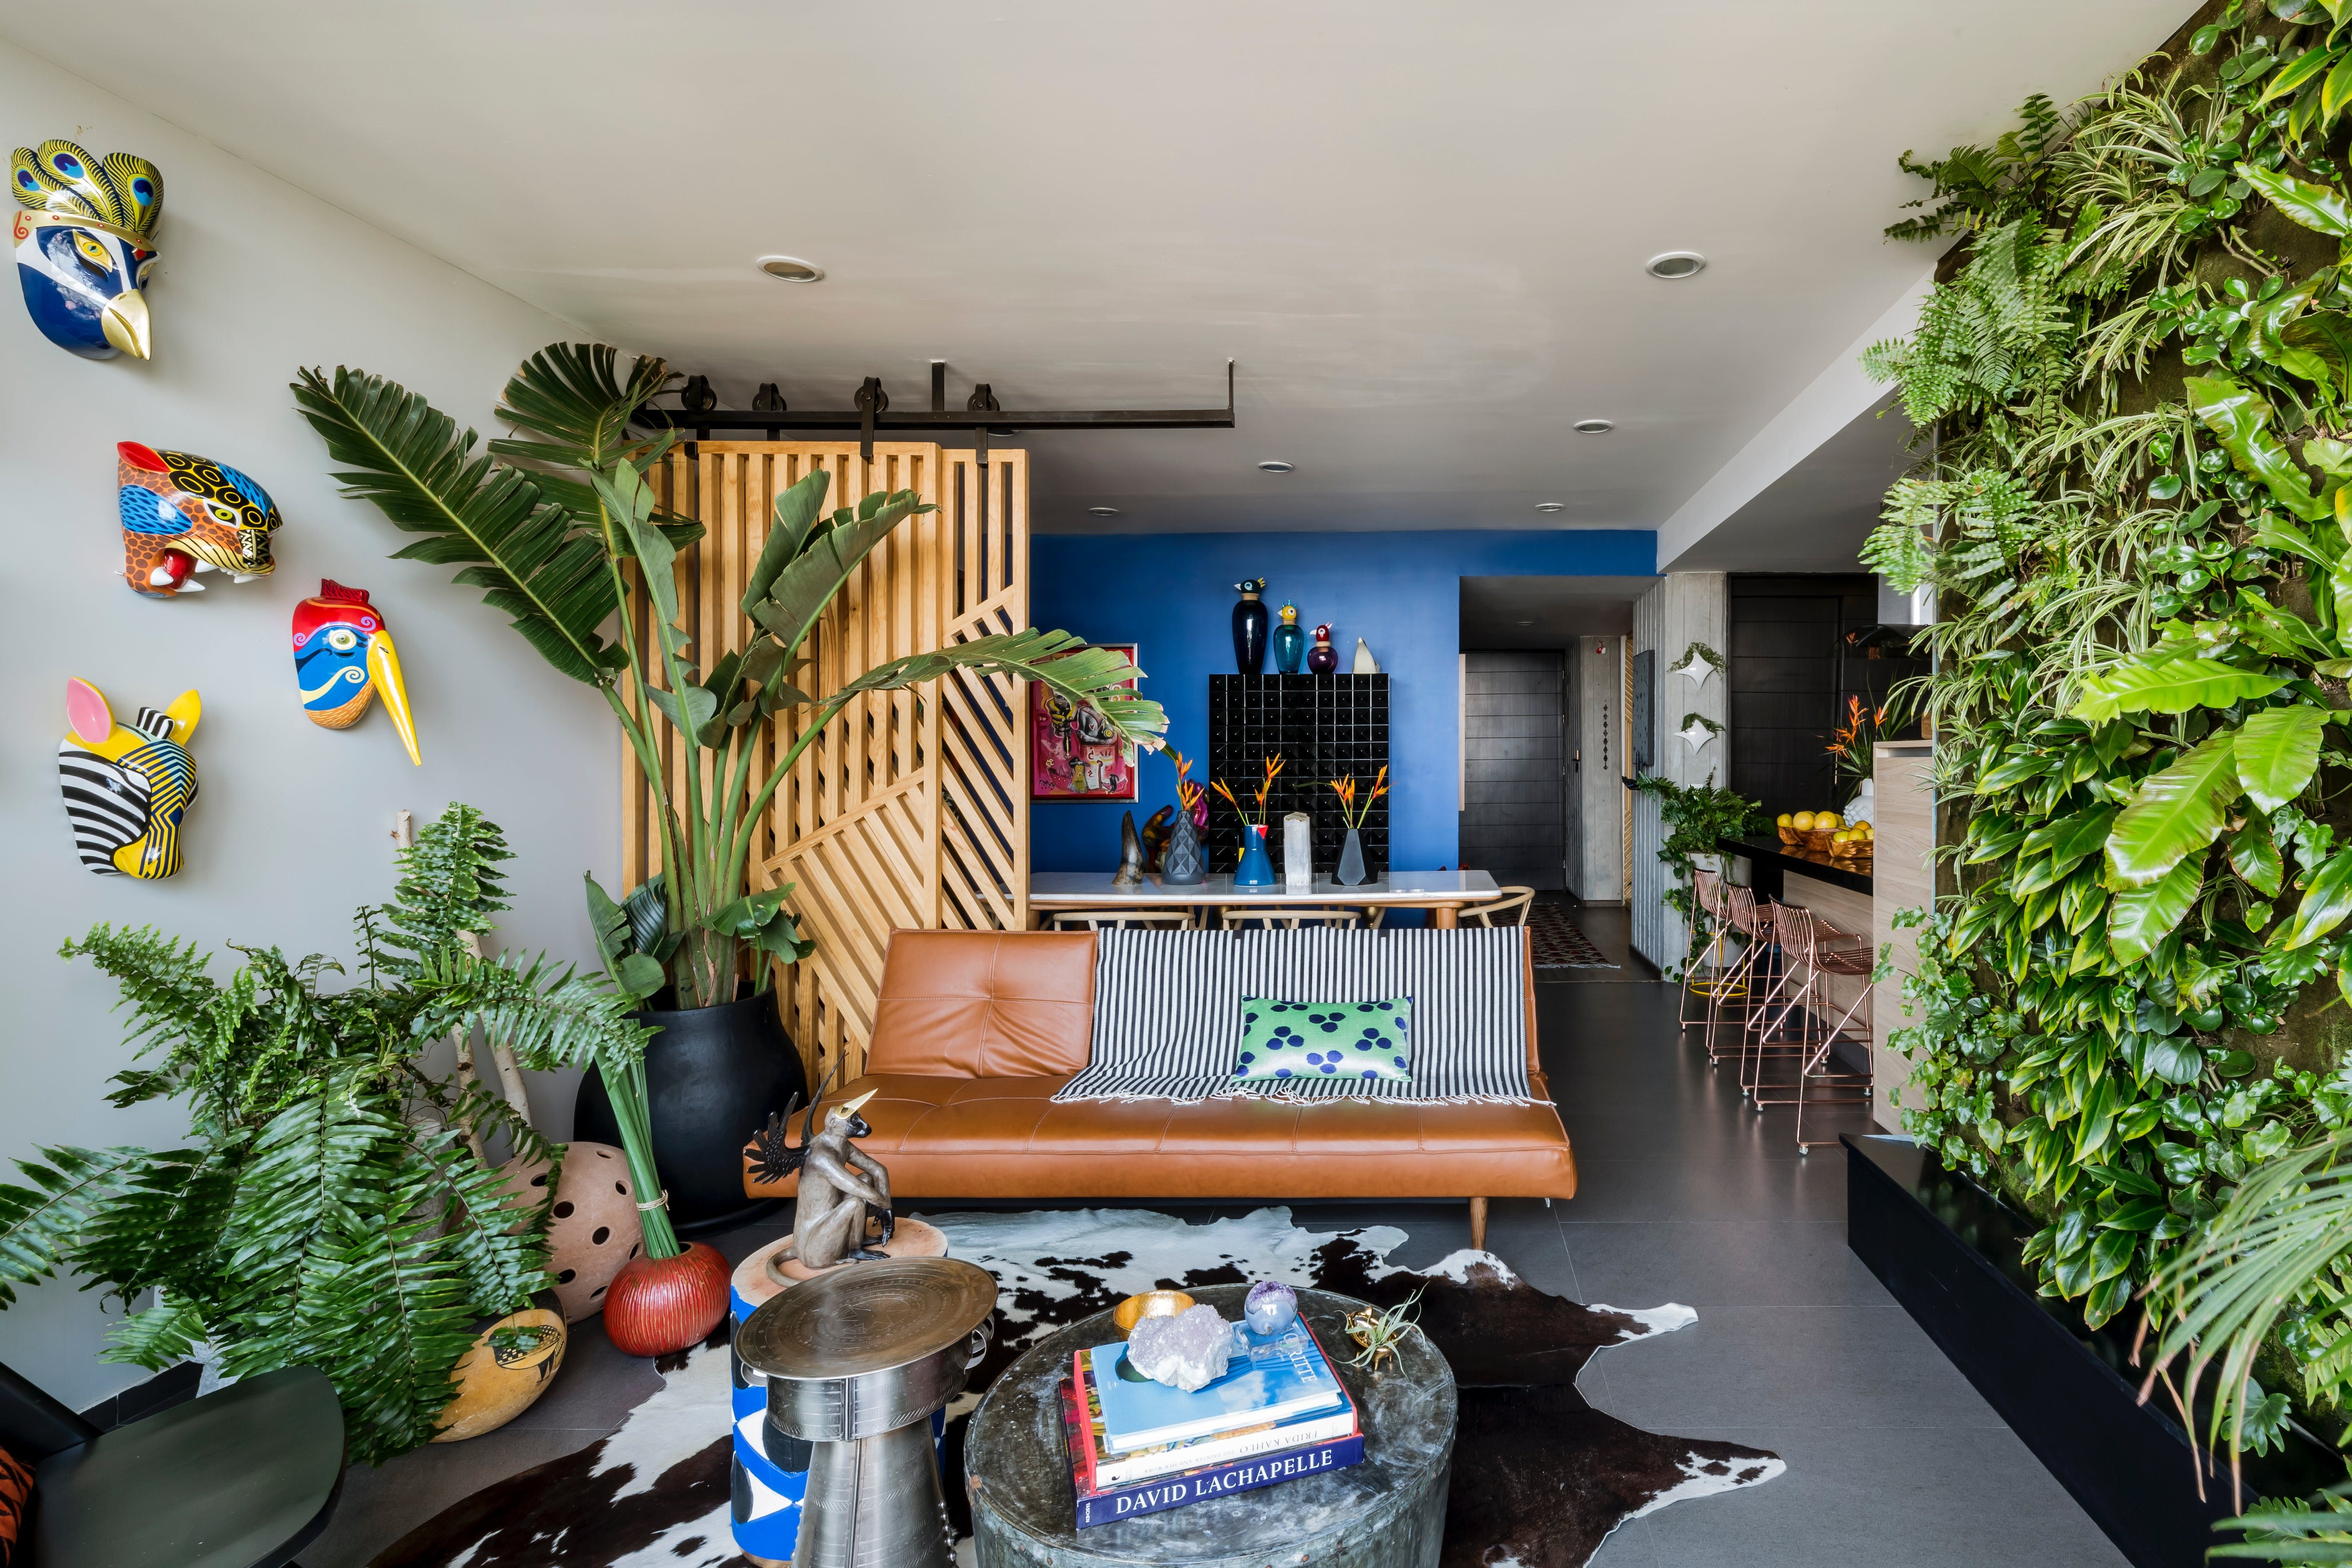 A Colorful Home In Mexico Celebrating Eclectic Maximalism Jungle Decorations Plants Indoor Apartment Decor